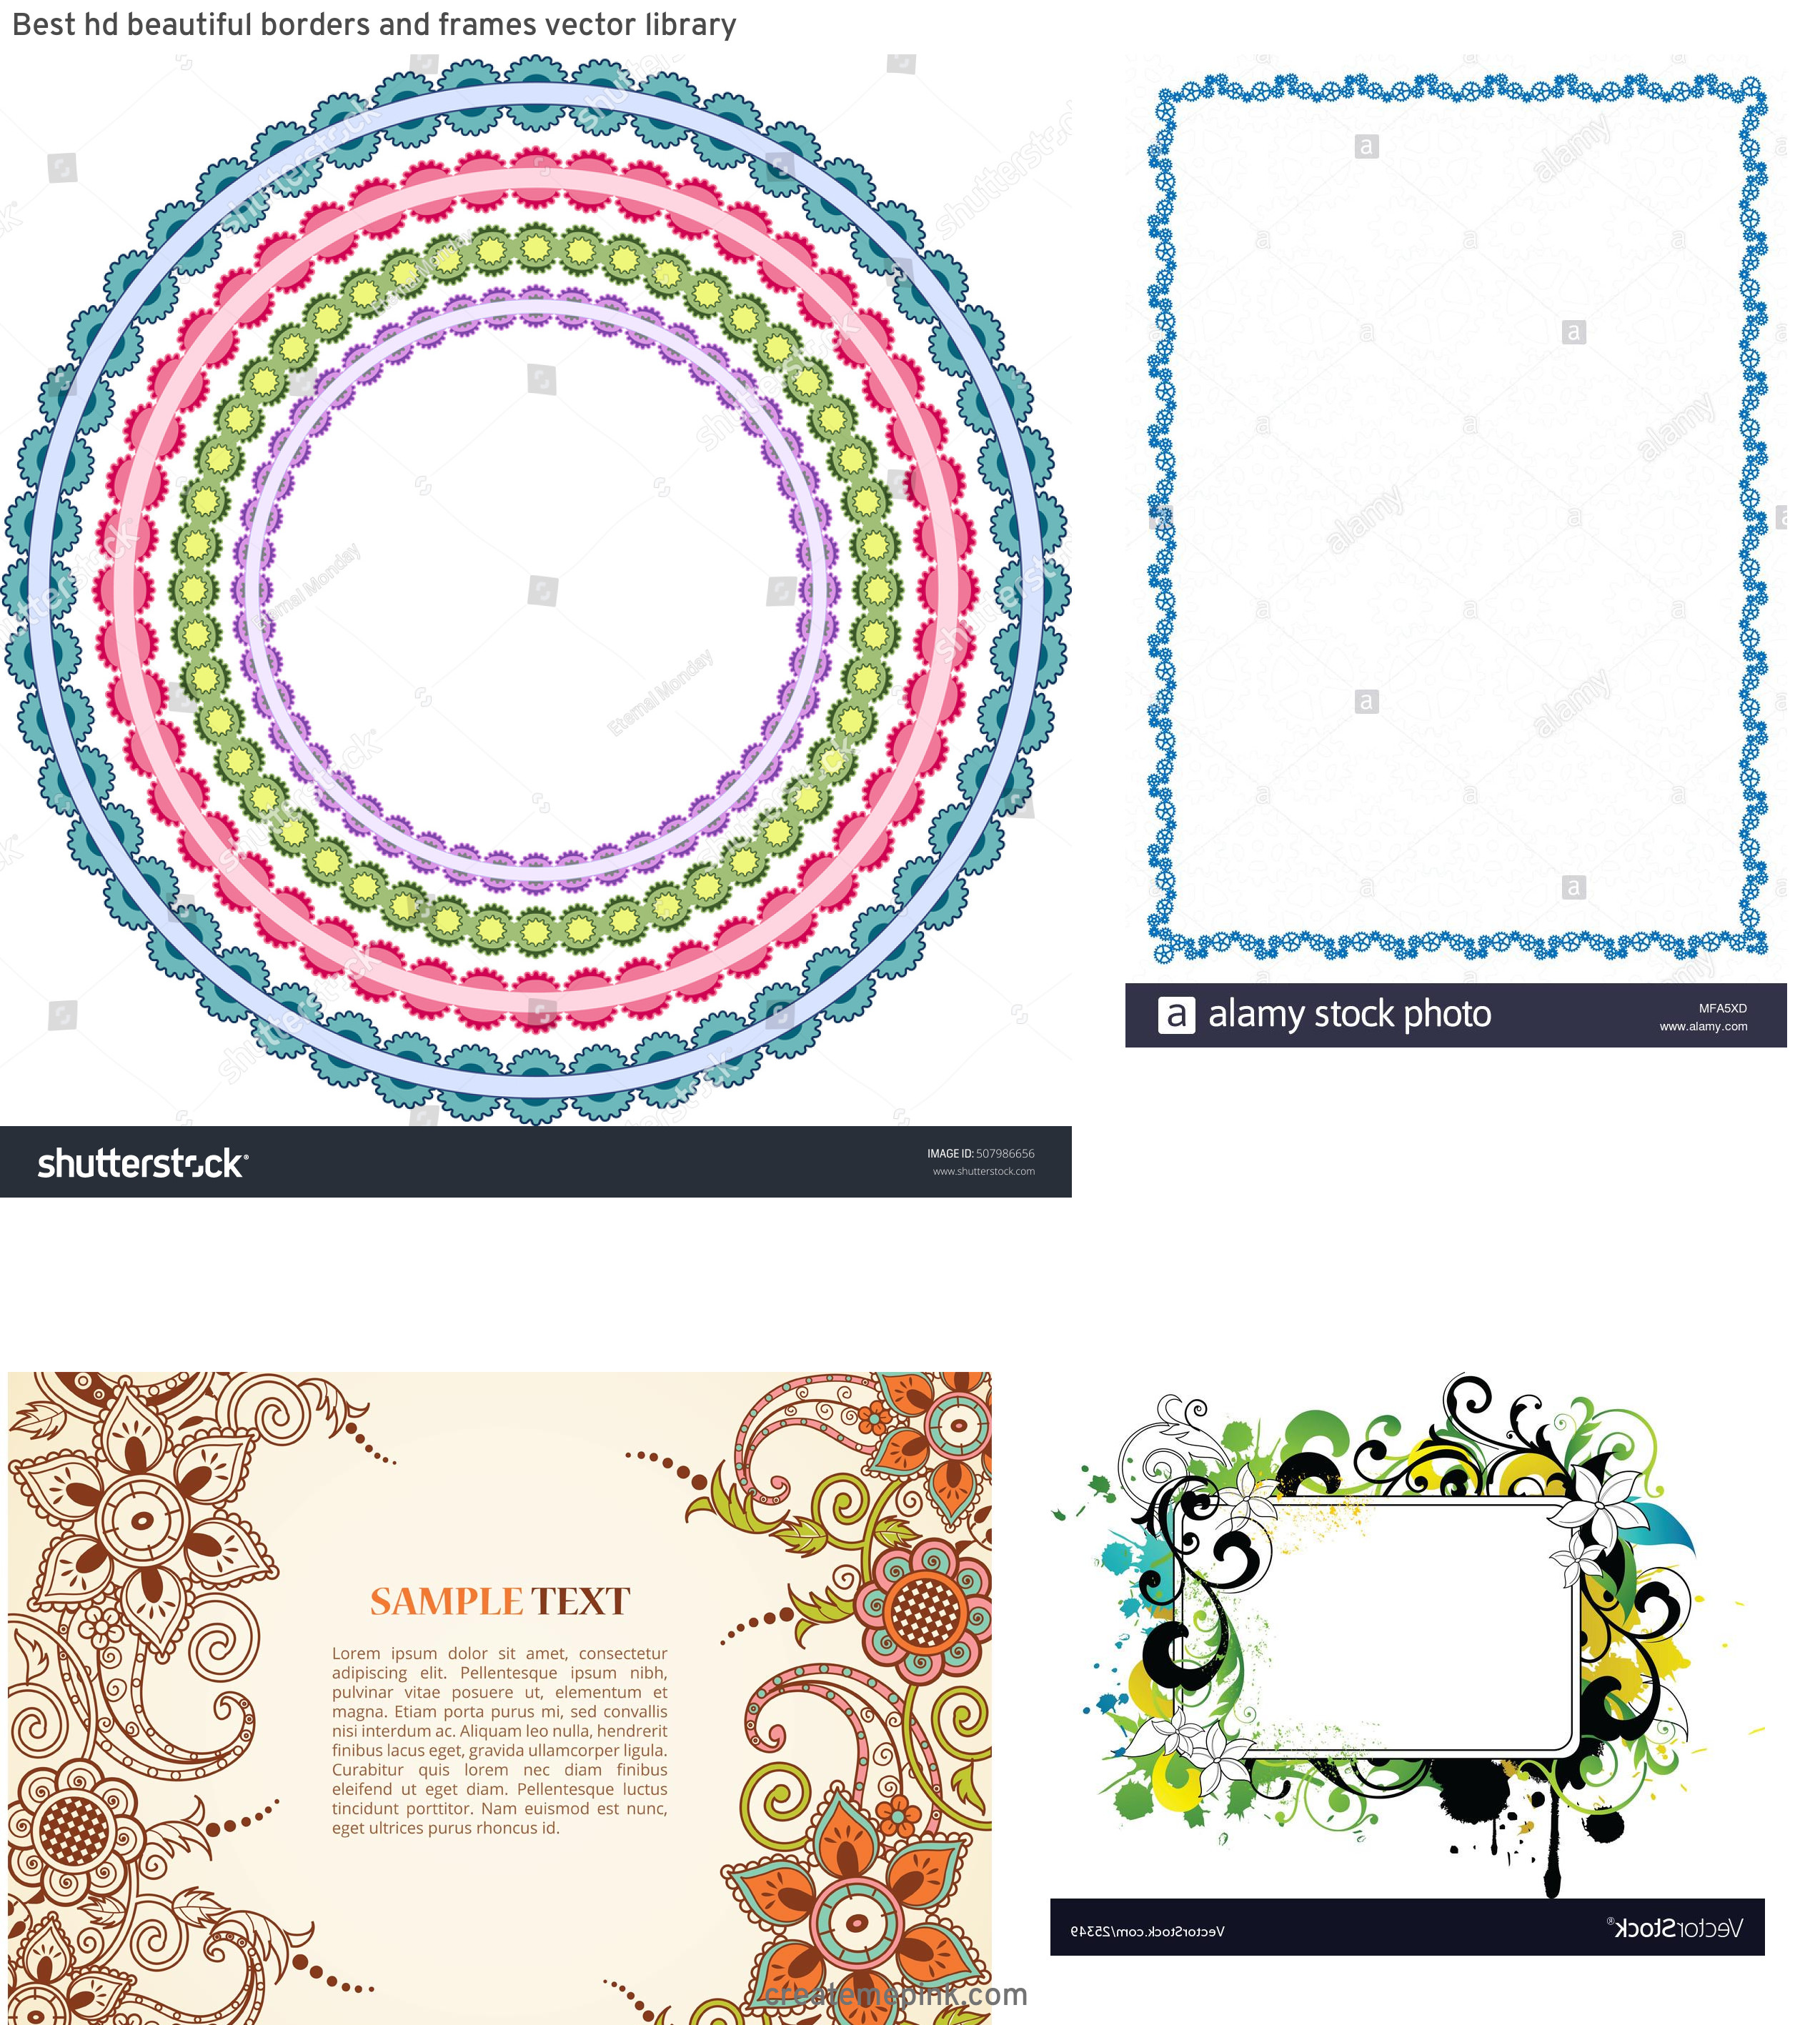 Simple Lace Frame Vector: Best Hd Beautiful Borders And Frames Vector Library